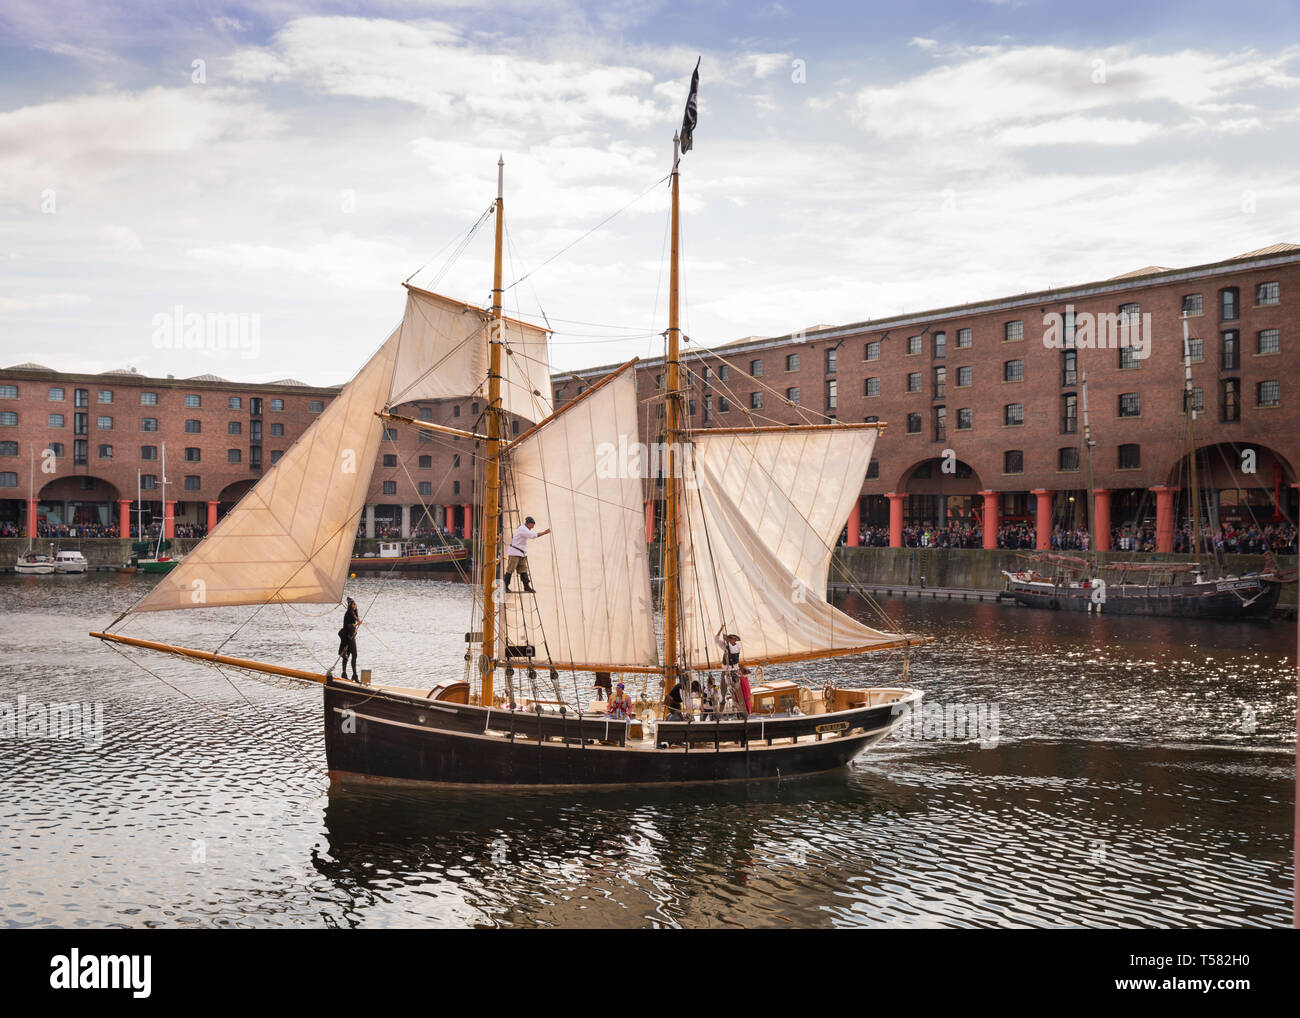 Pirate ship at Albert Dock for the Liverpool Pirate Festival - Stock Image